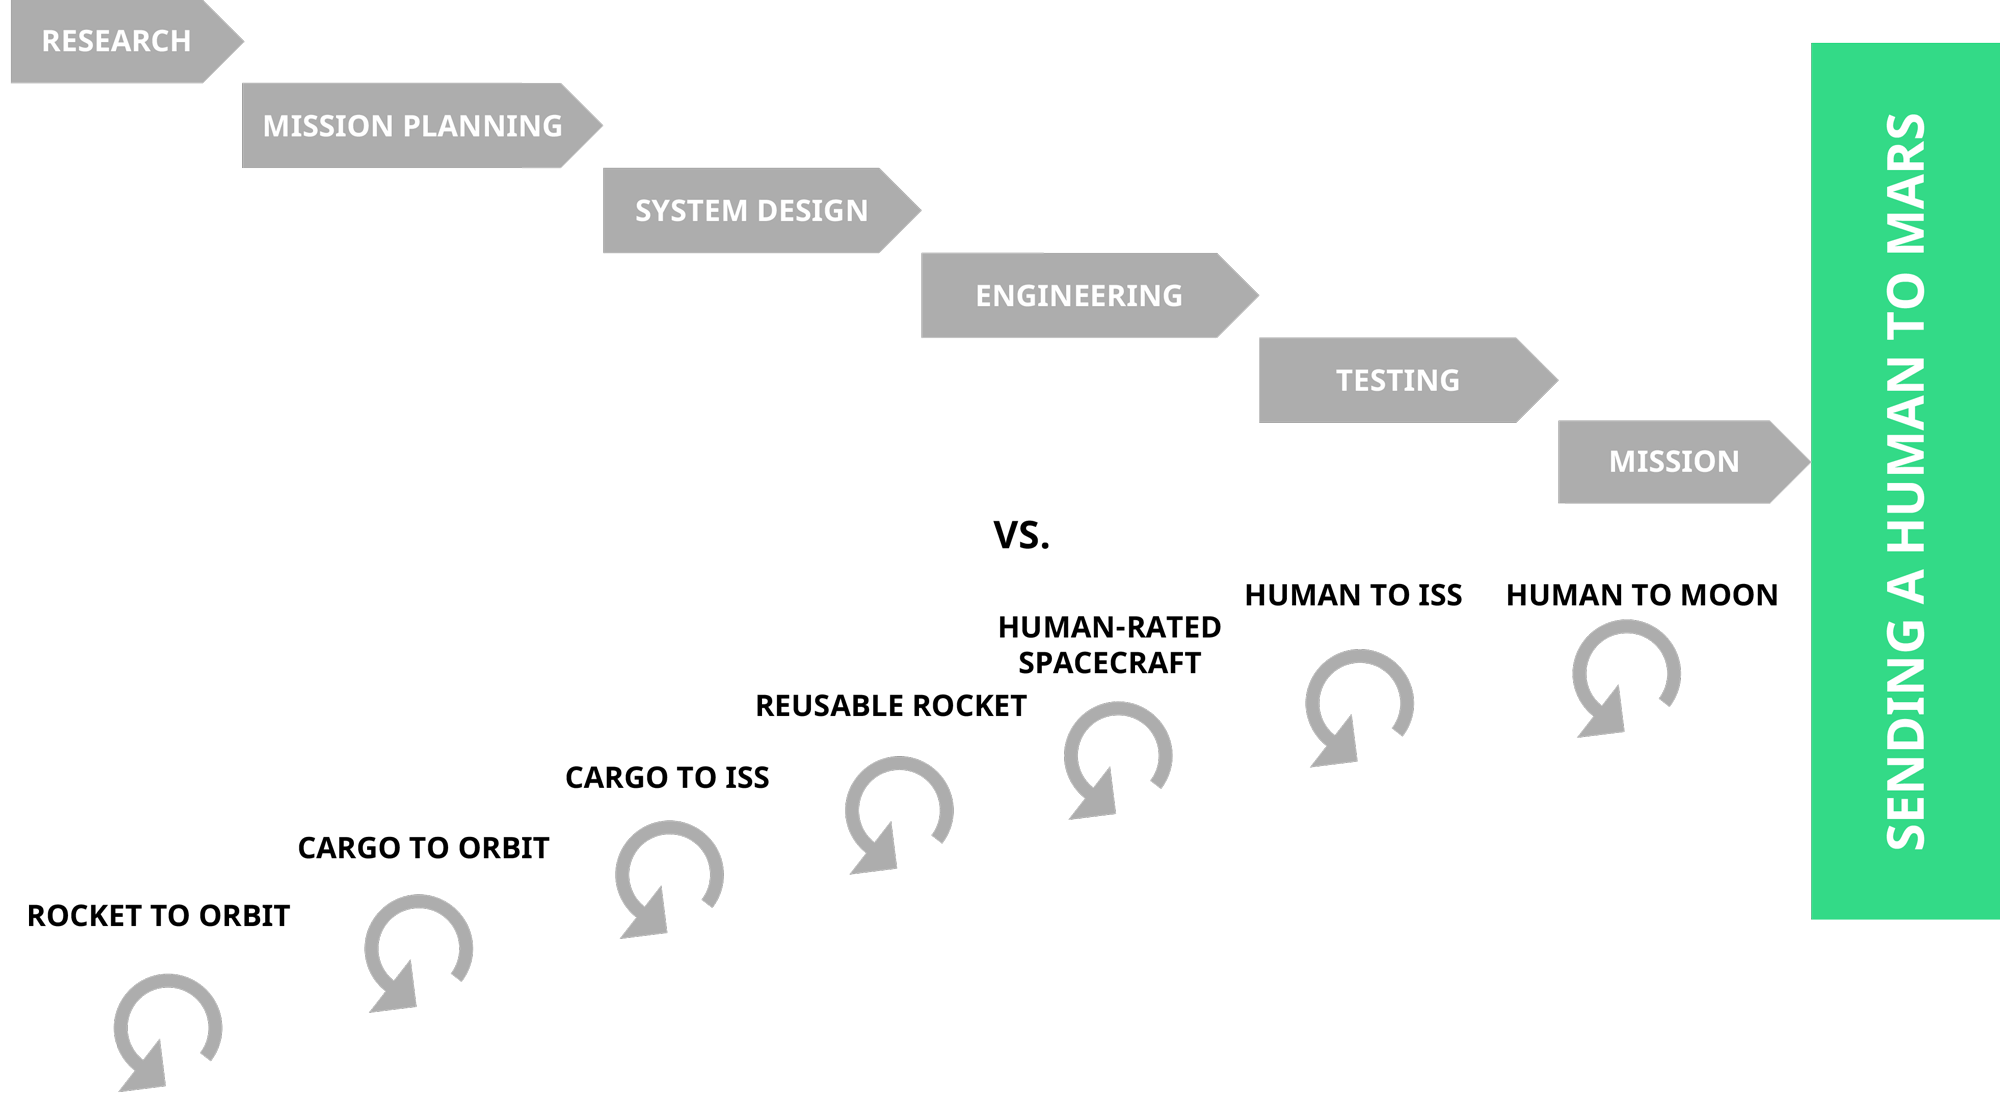 SpaceX iterative approach to innovation